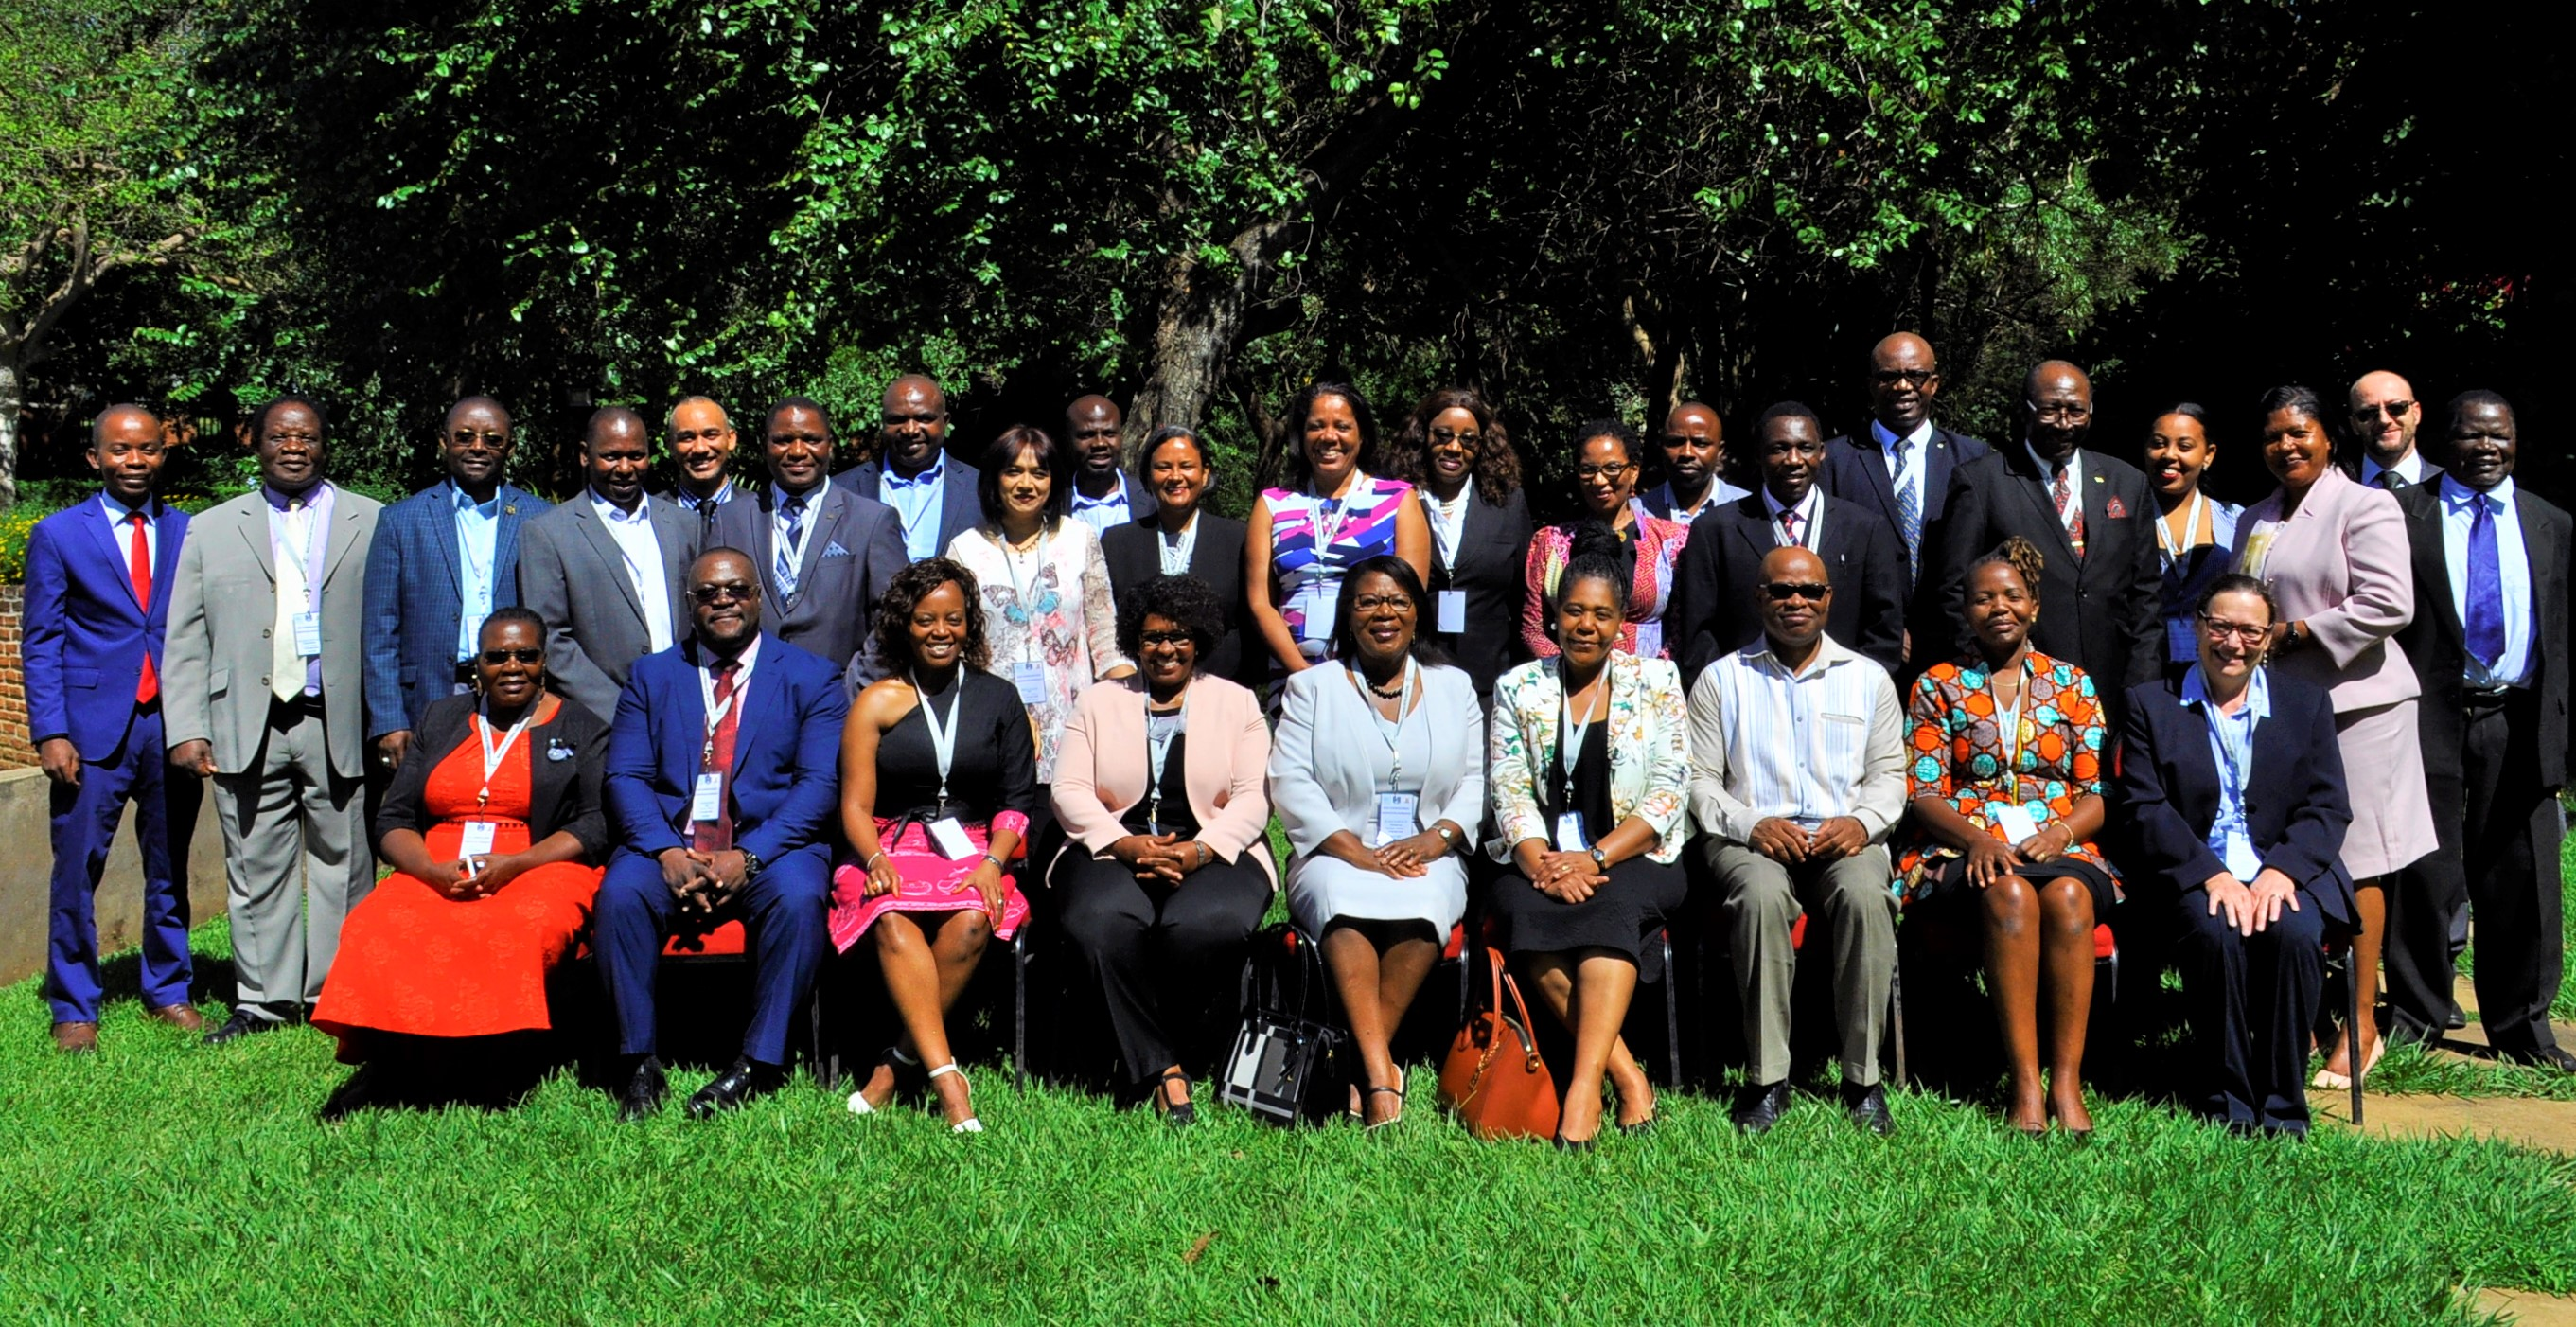 Group photograph of the 2018 New Commissioners' Orientation participants held in Lilongwe in April 2018. Photo credit: Chris Sekani (HAAG Photo Graphics)